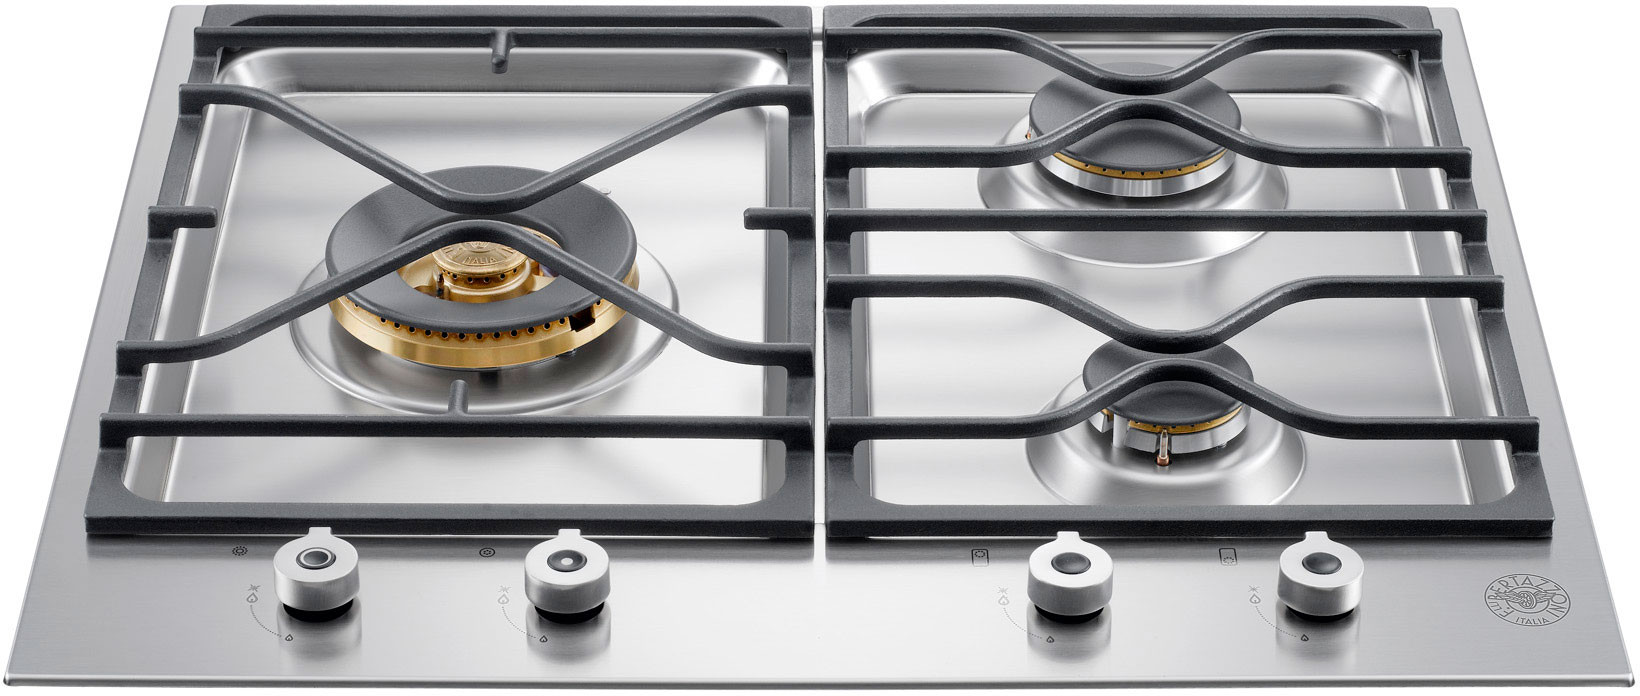 Bertazzoni Professional Series Pmb24300xlp Stainless Steel Cooktop Gas Cooktop Cooktop